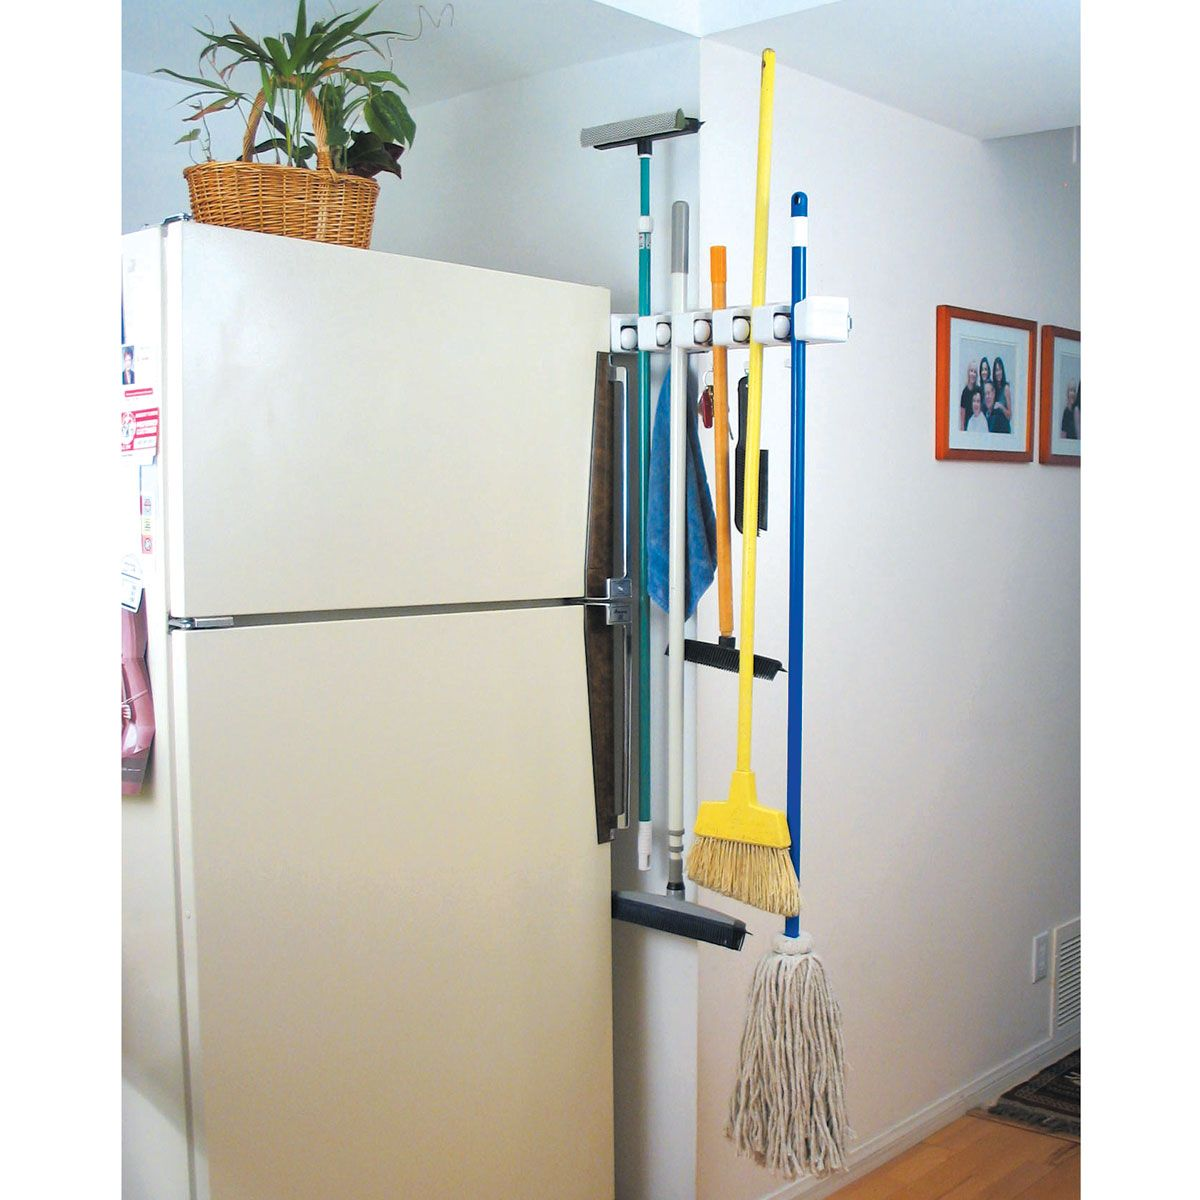 N Slide Broom And Mop Holder Organization Around The House From Sporty S Tool